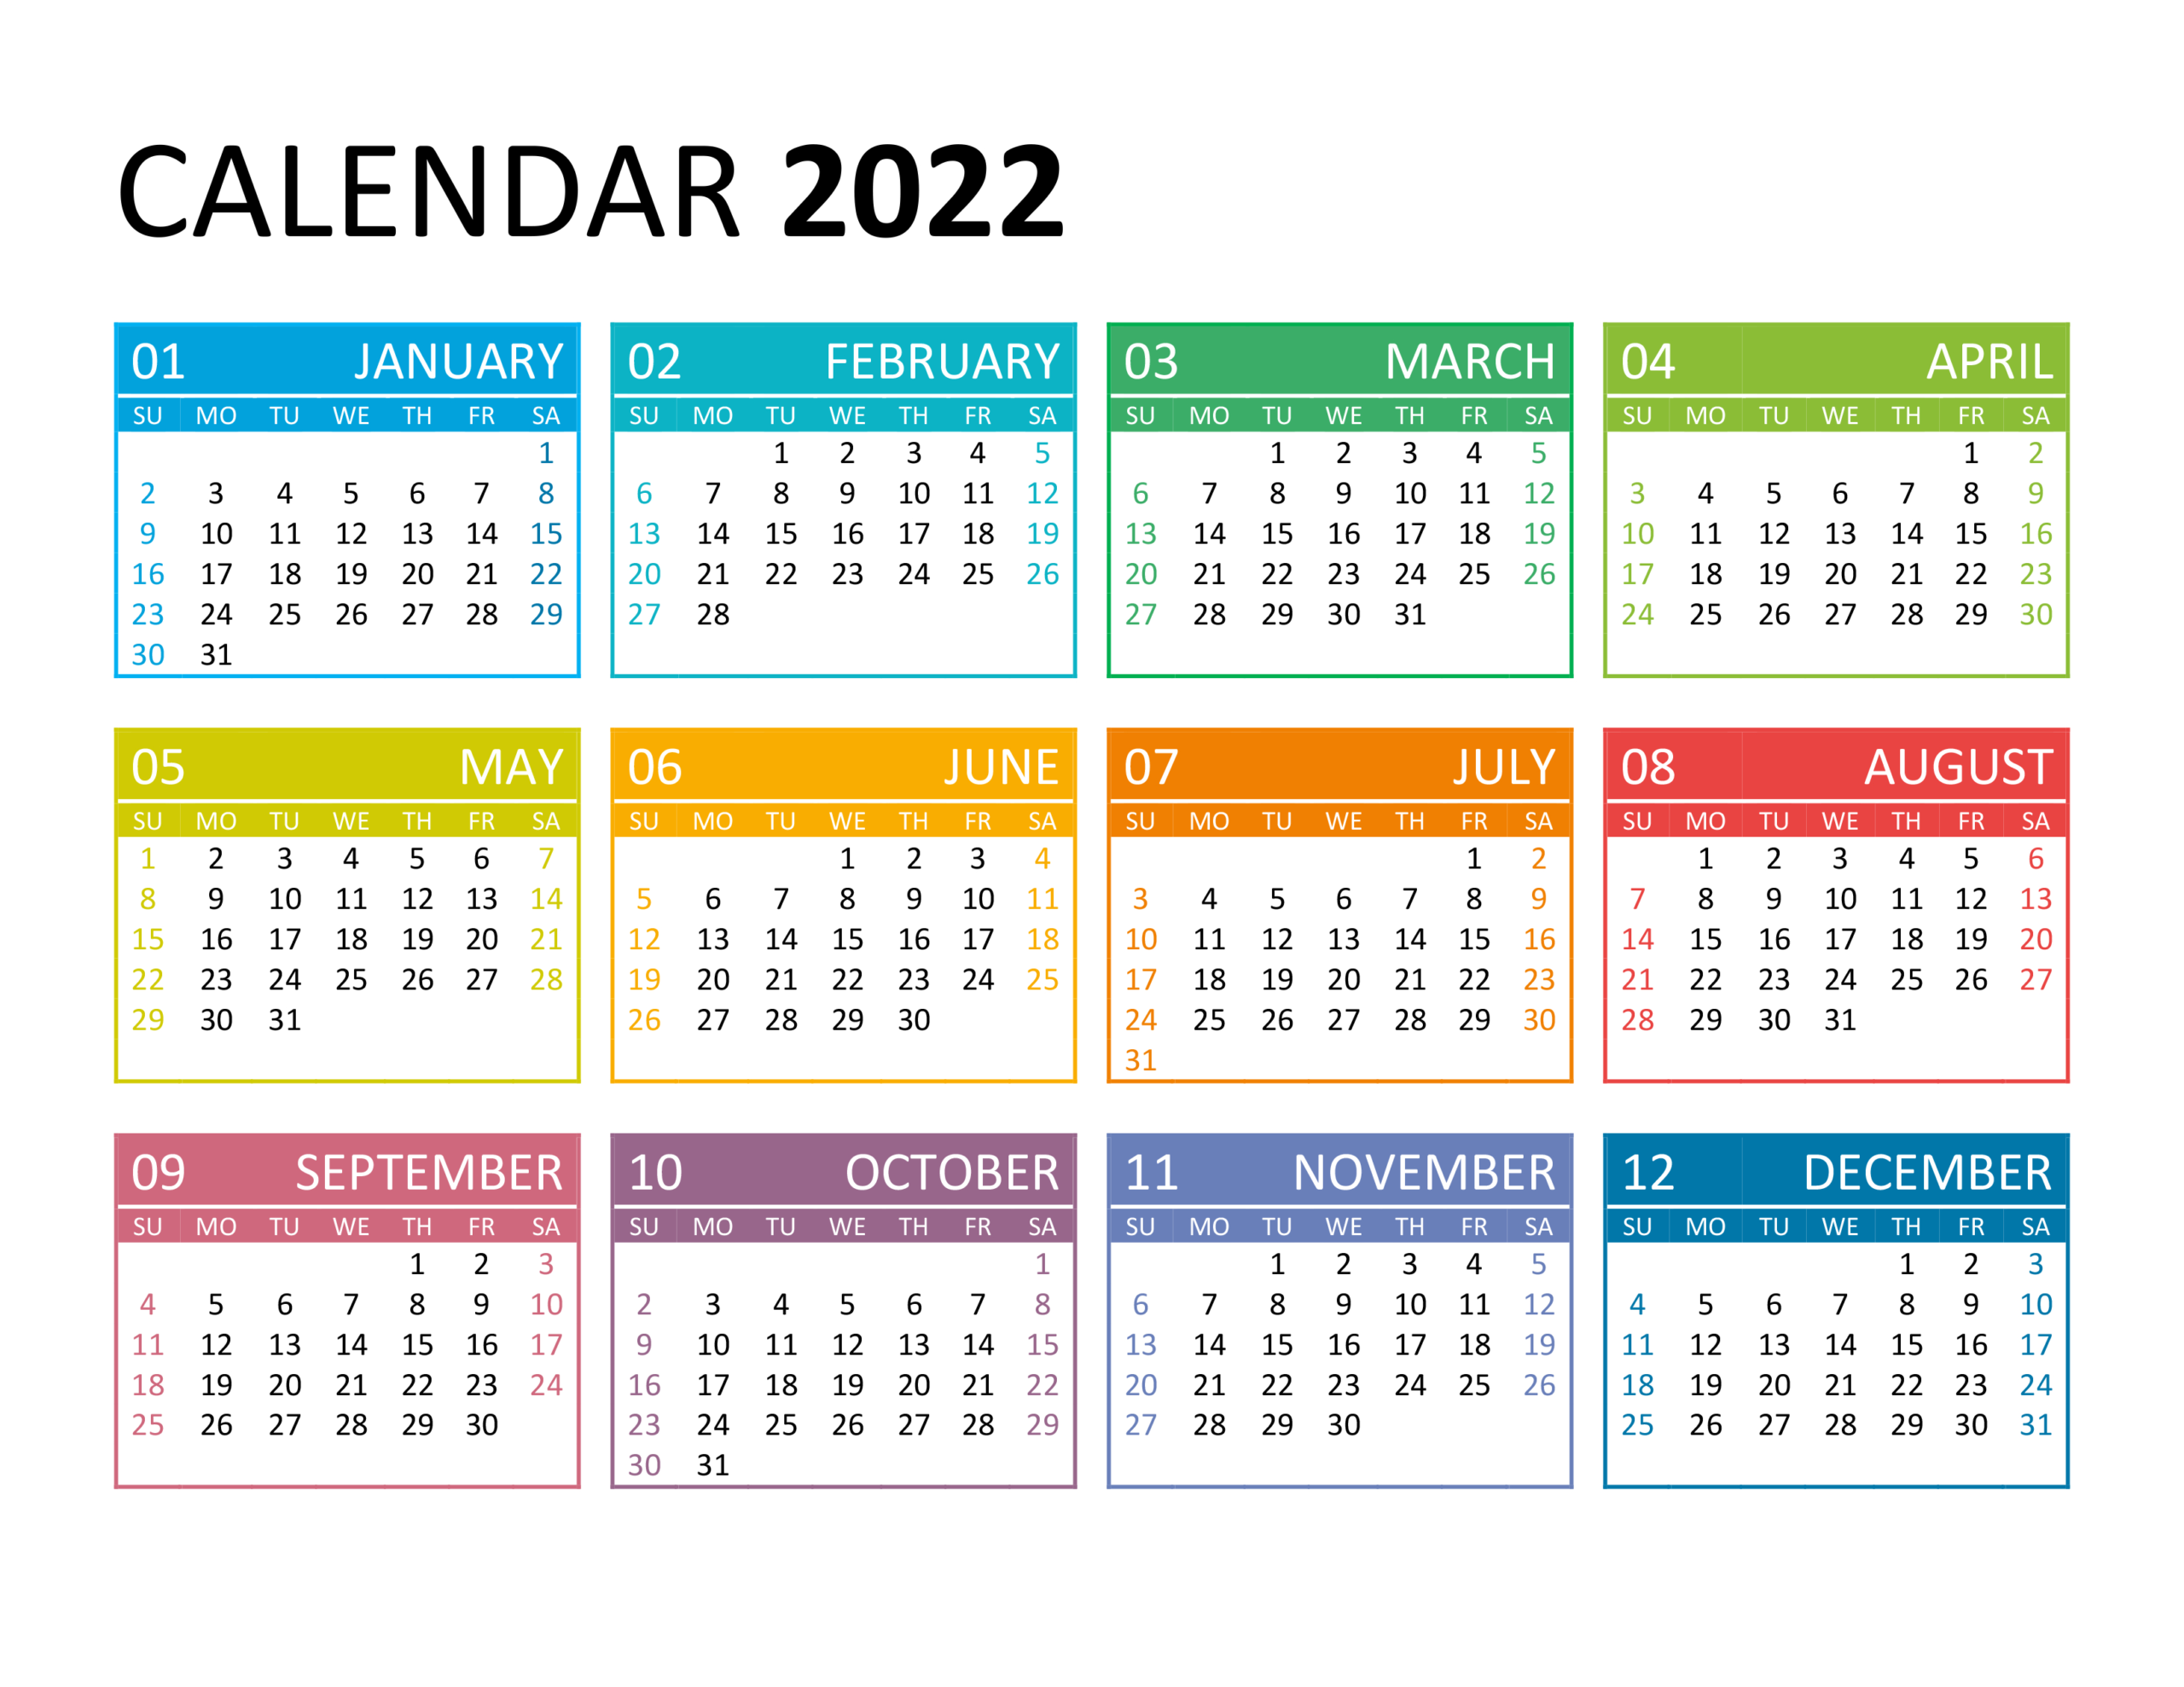 Yearly Calendar 2022 - Free-Calendar.su throughout 2022 2022 Monthly Planner Free Printable